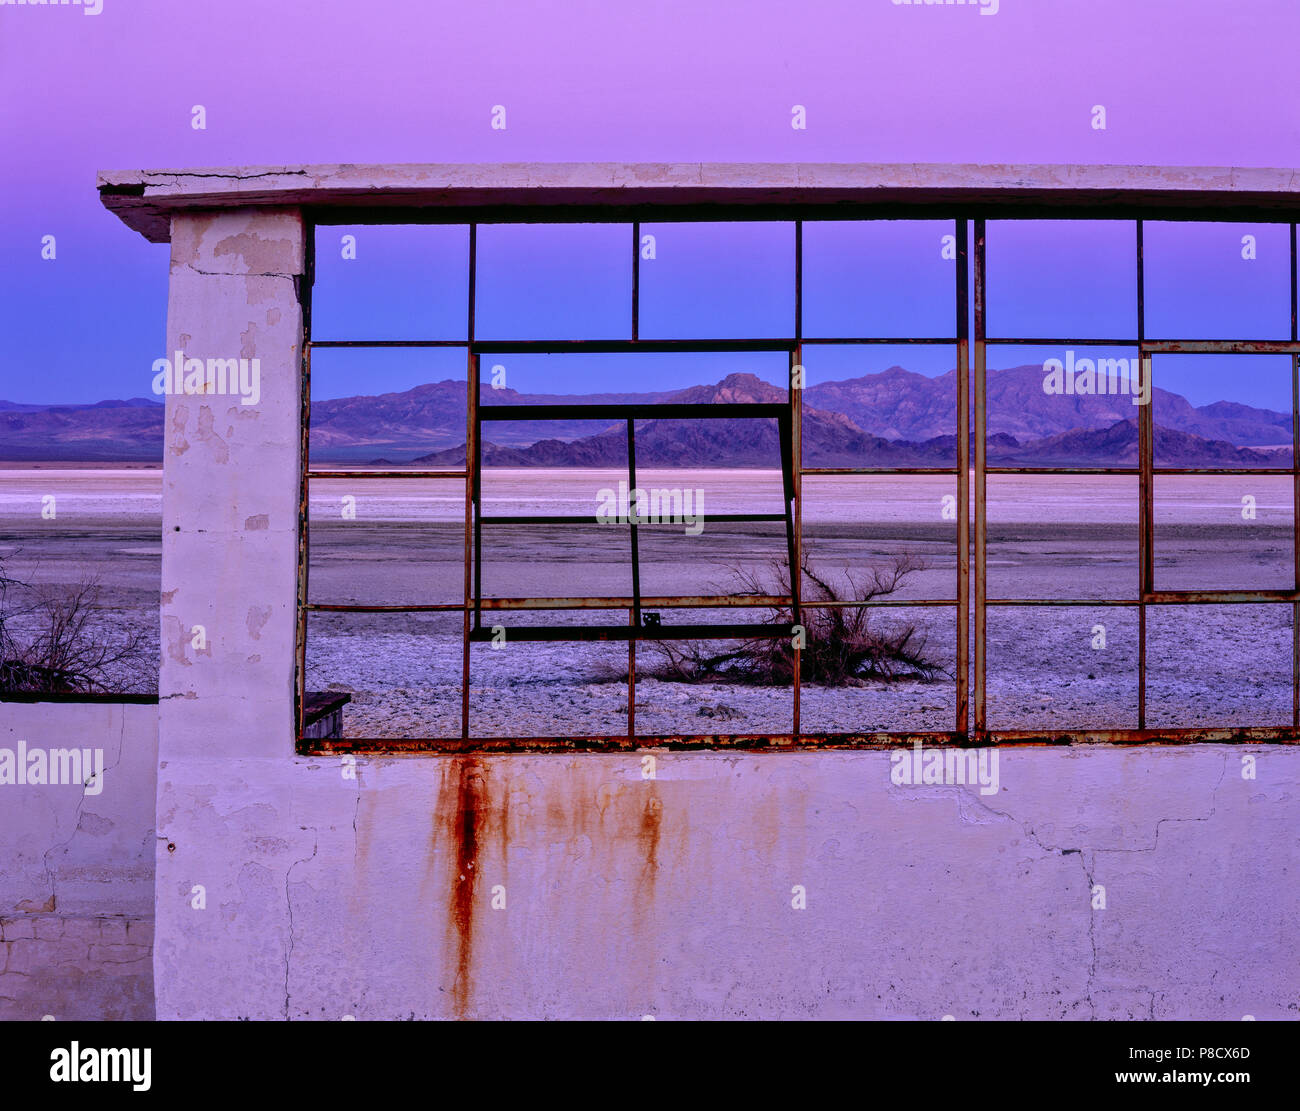 Dawn,Bath Ruins, Zzyzx Mineral Springs, Soda lake, Mojave National Preserve, California Stock Photo